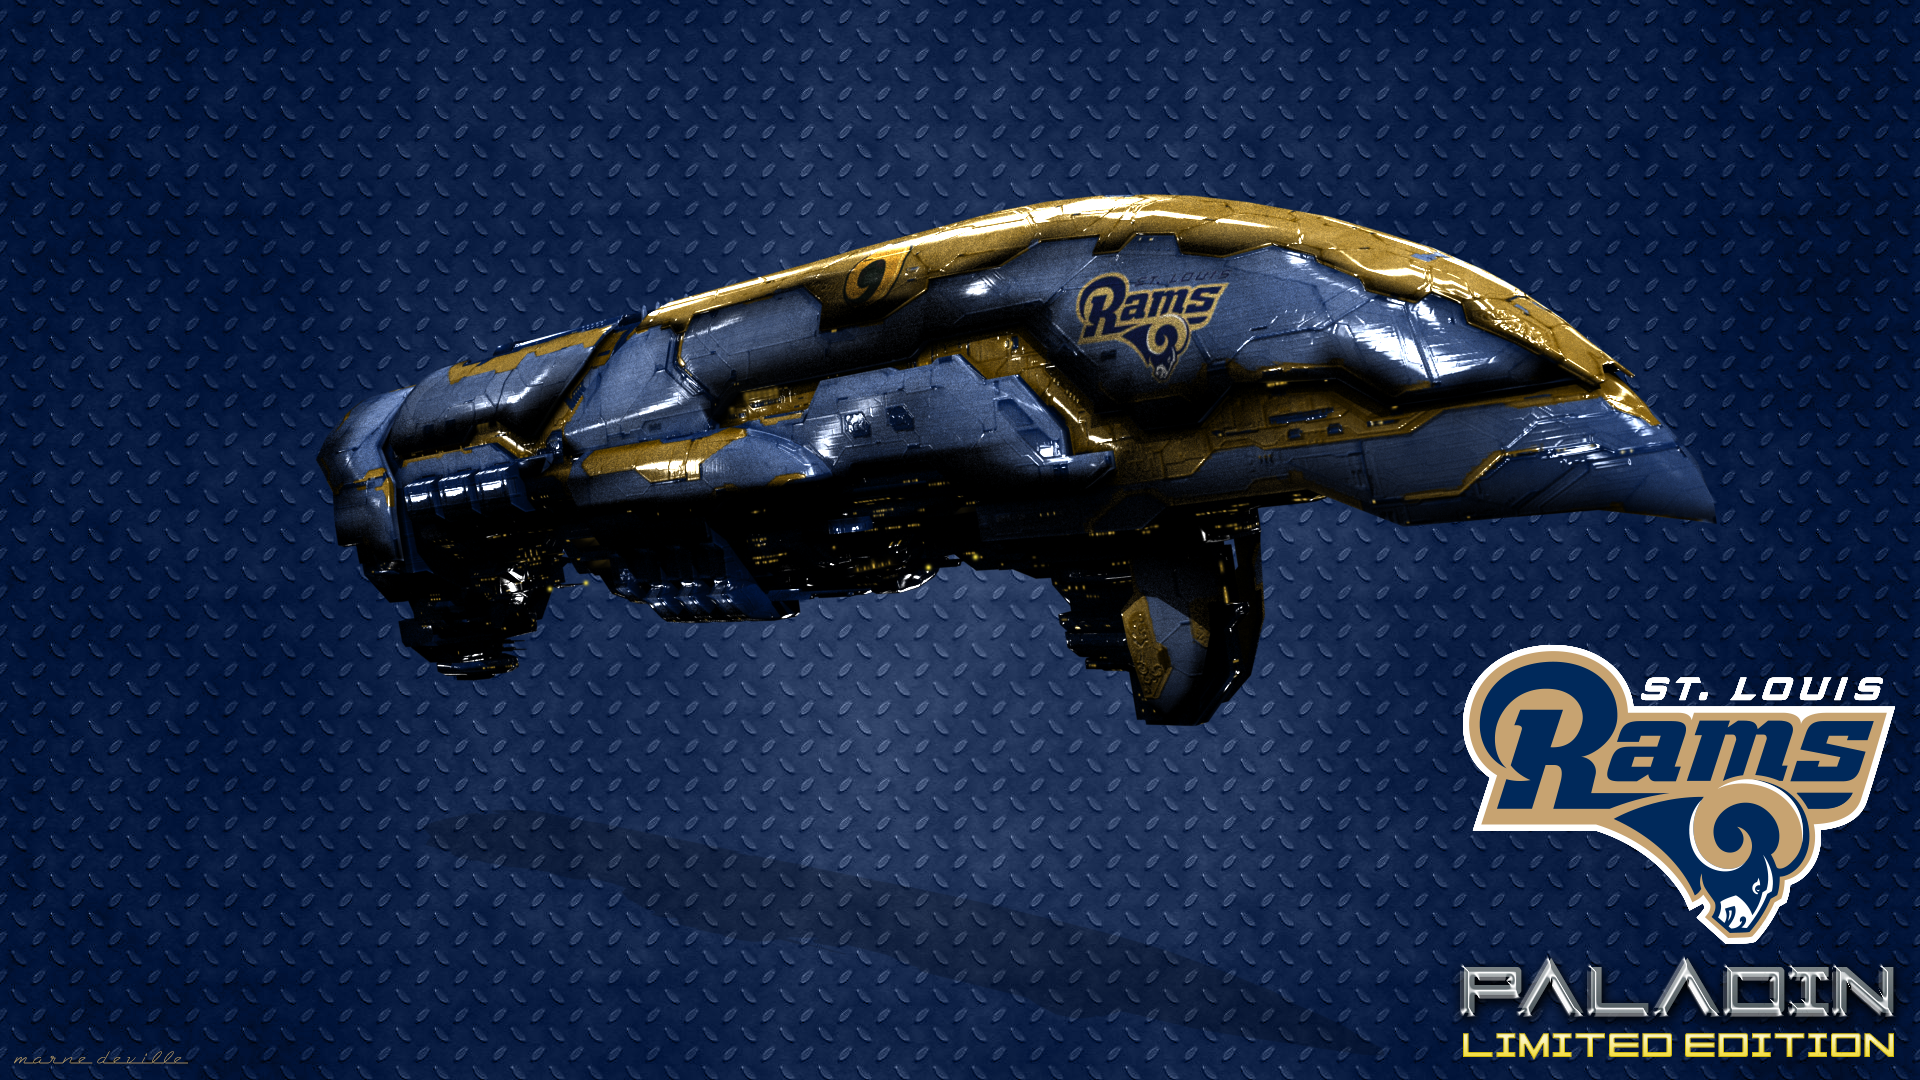 High Quality Image of St Louis Rams | 1920x1080 px